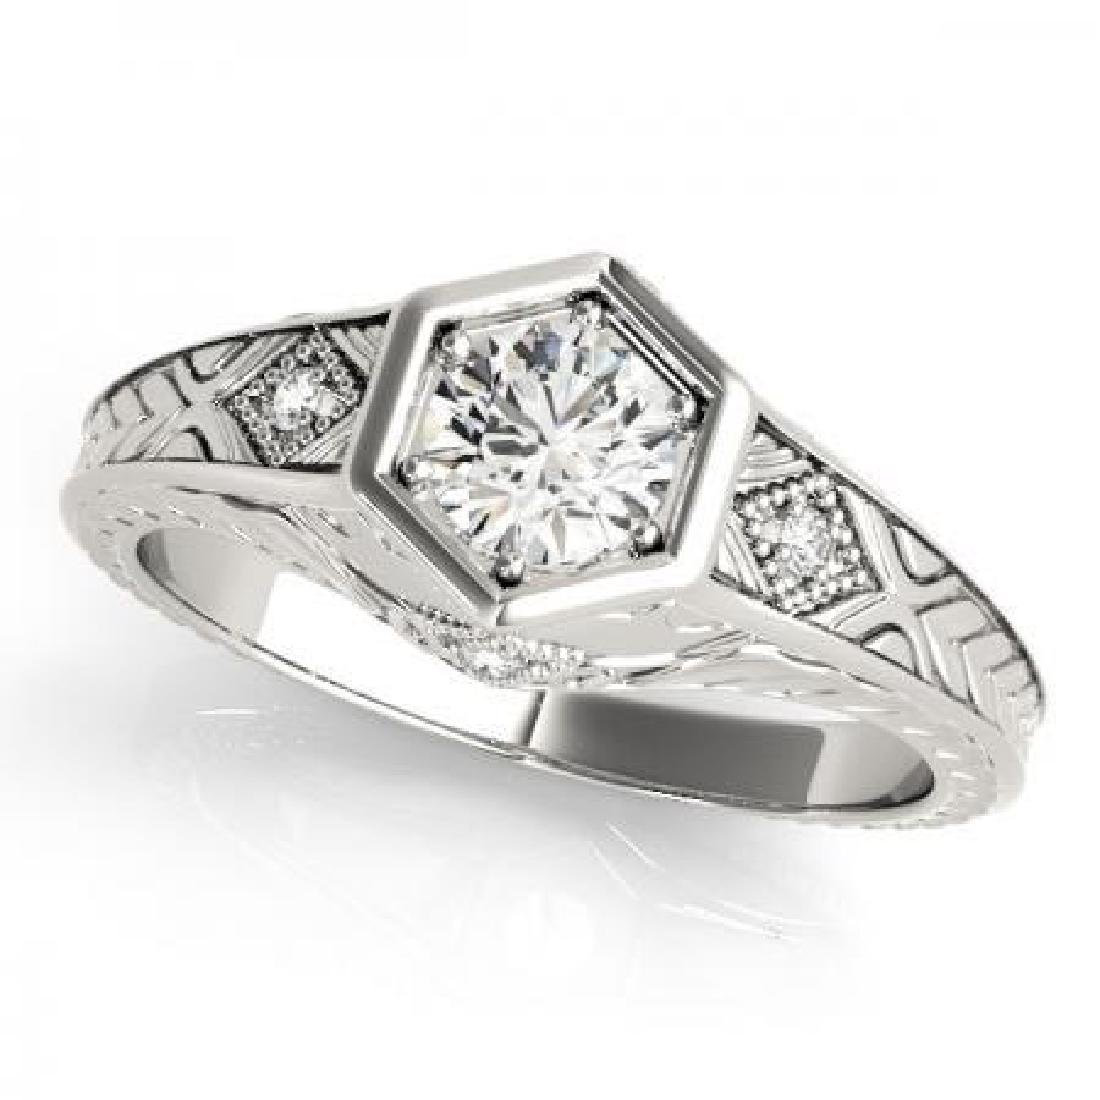 CERTIFIED 18KT WHITE GOLD 0.37 CT G-H/VS-SI1 DIAMOND EN